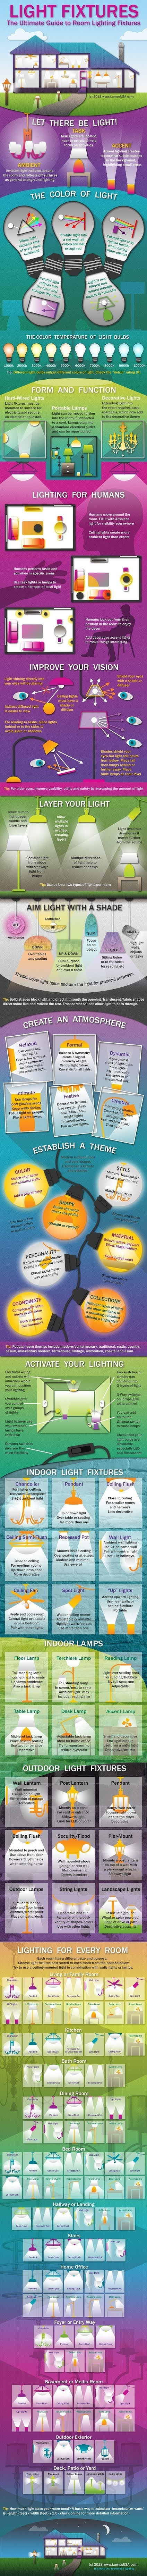 light-fixtures-bring-beautiful-lighting-to-every-room-of-your-home-or-business-infographic